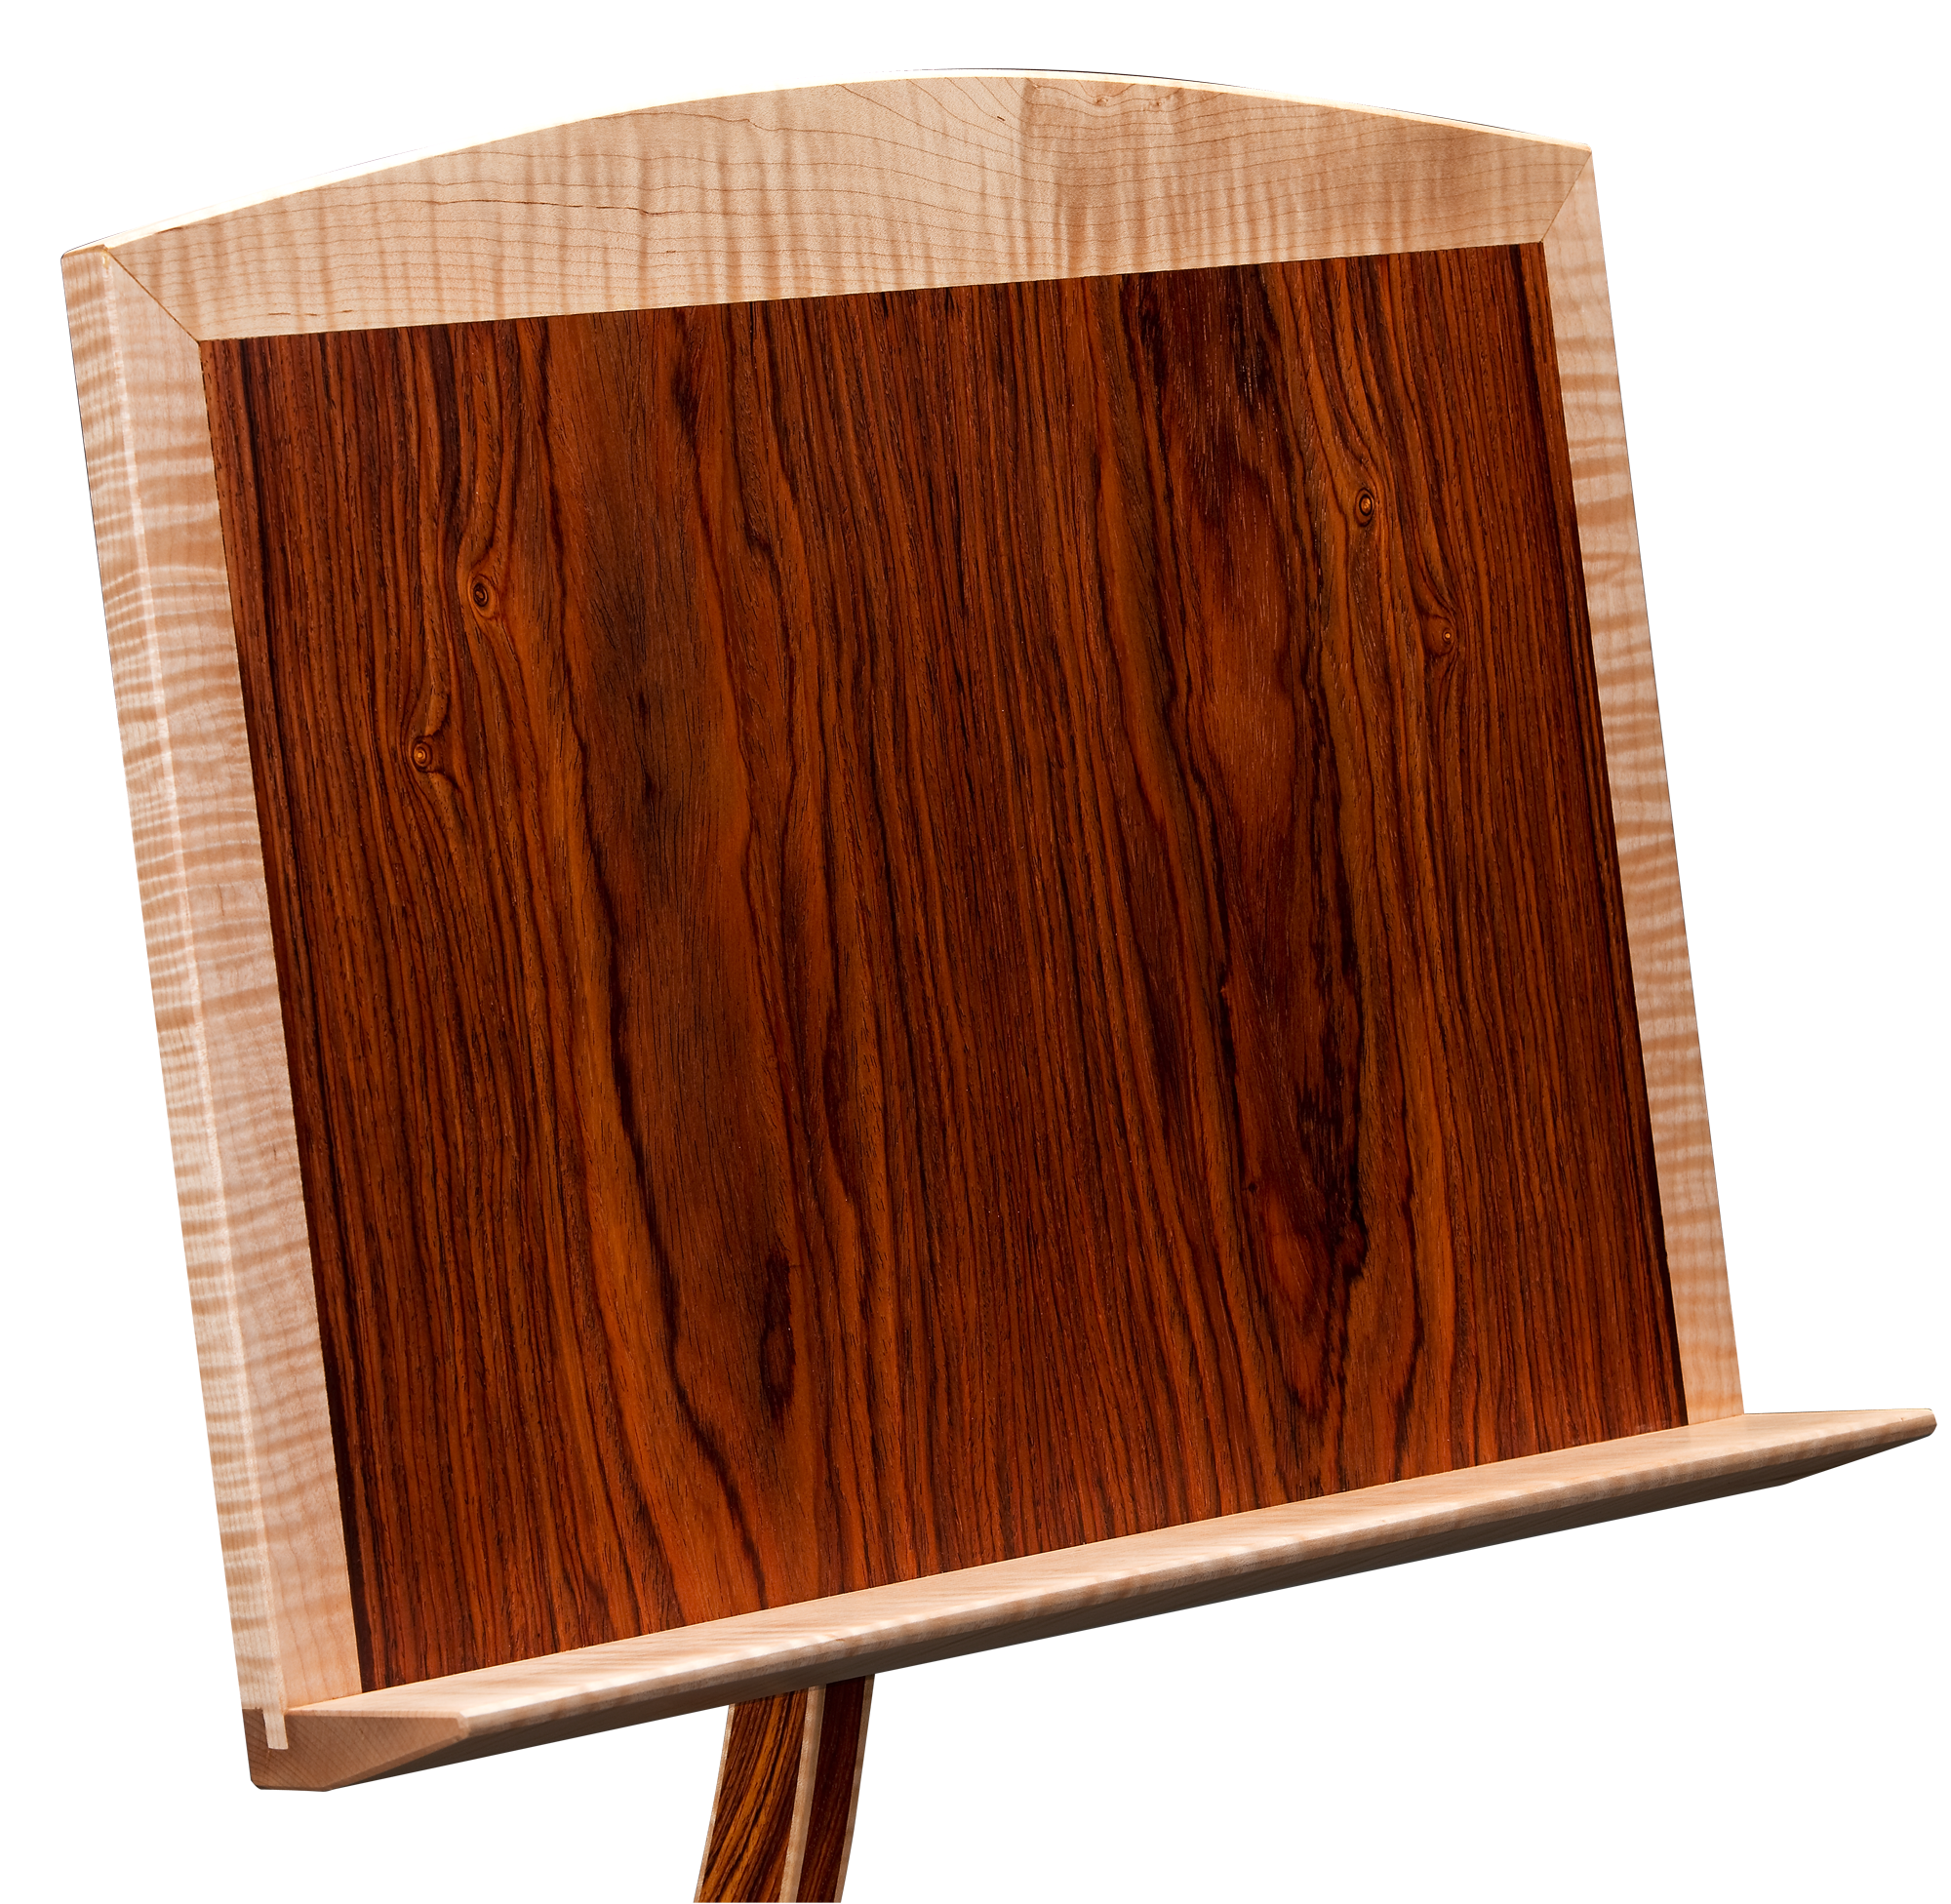 Music stand in cocobolo with curly maple trim.